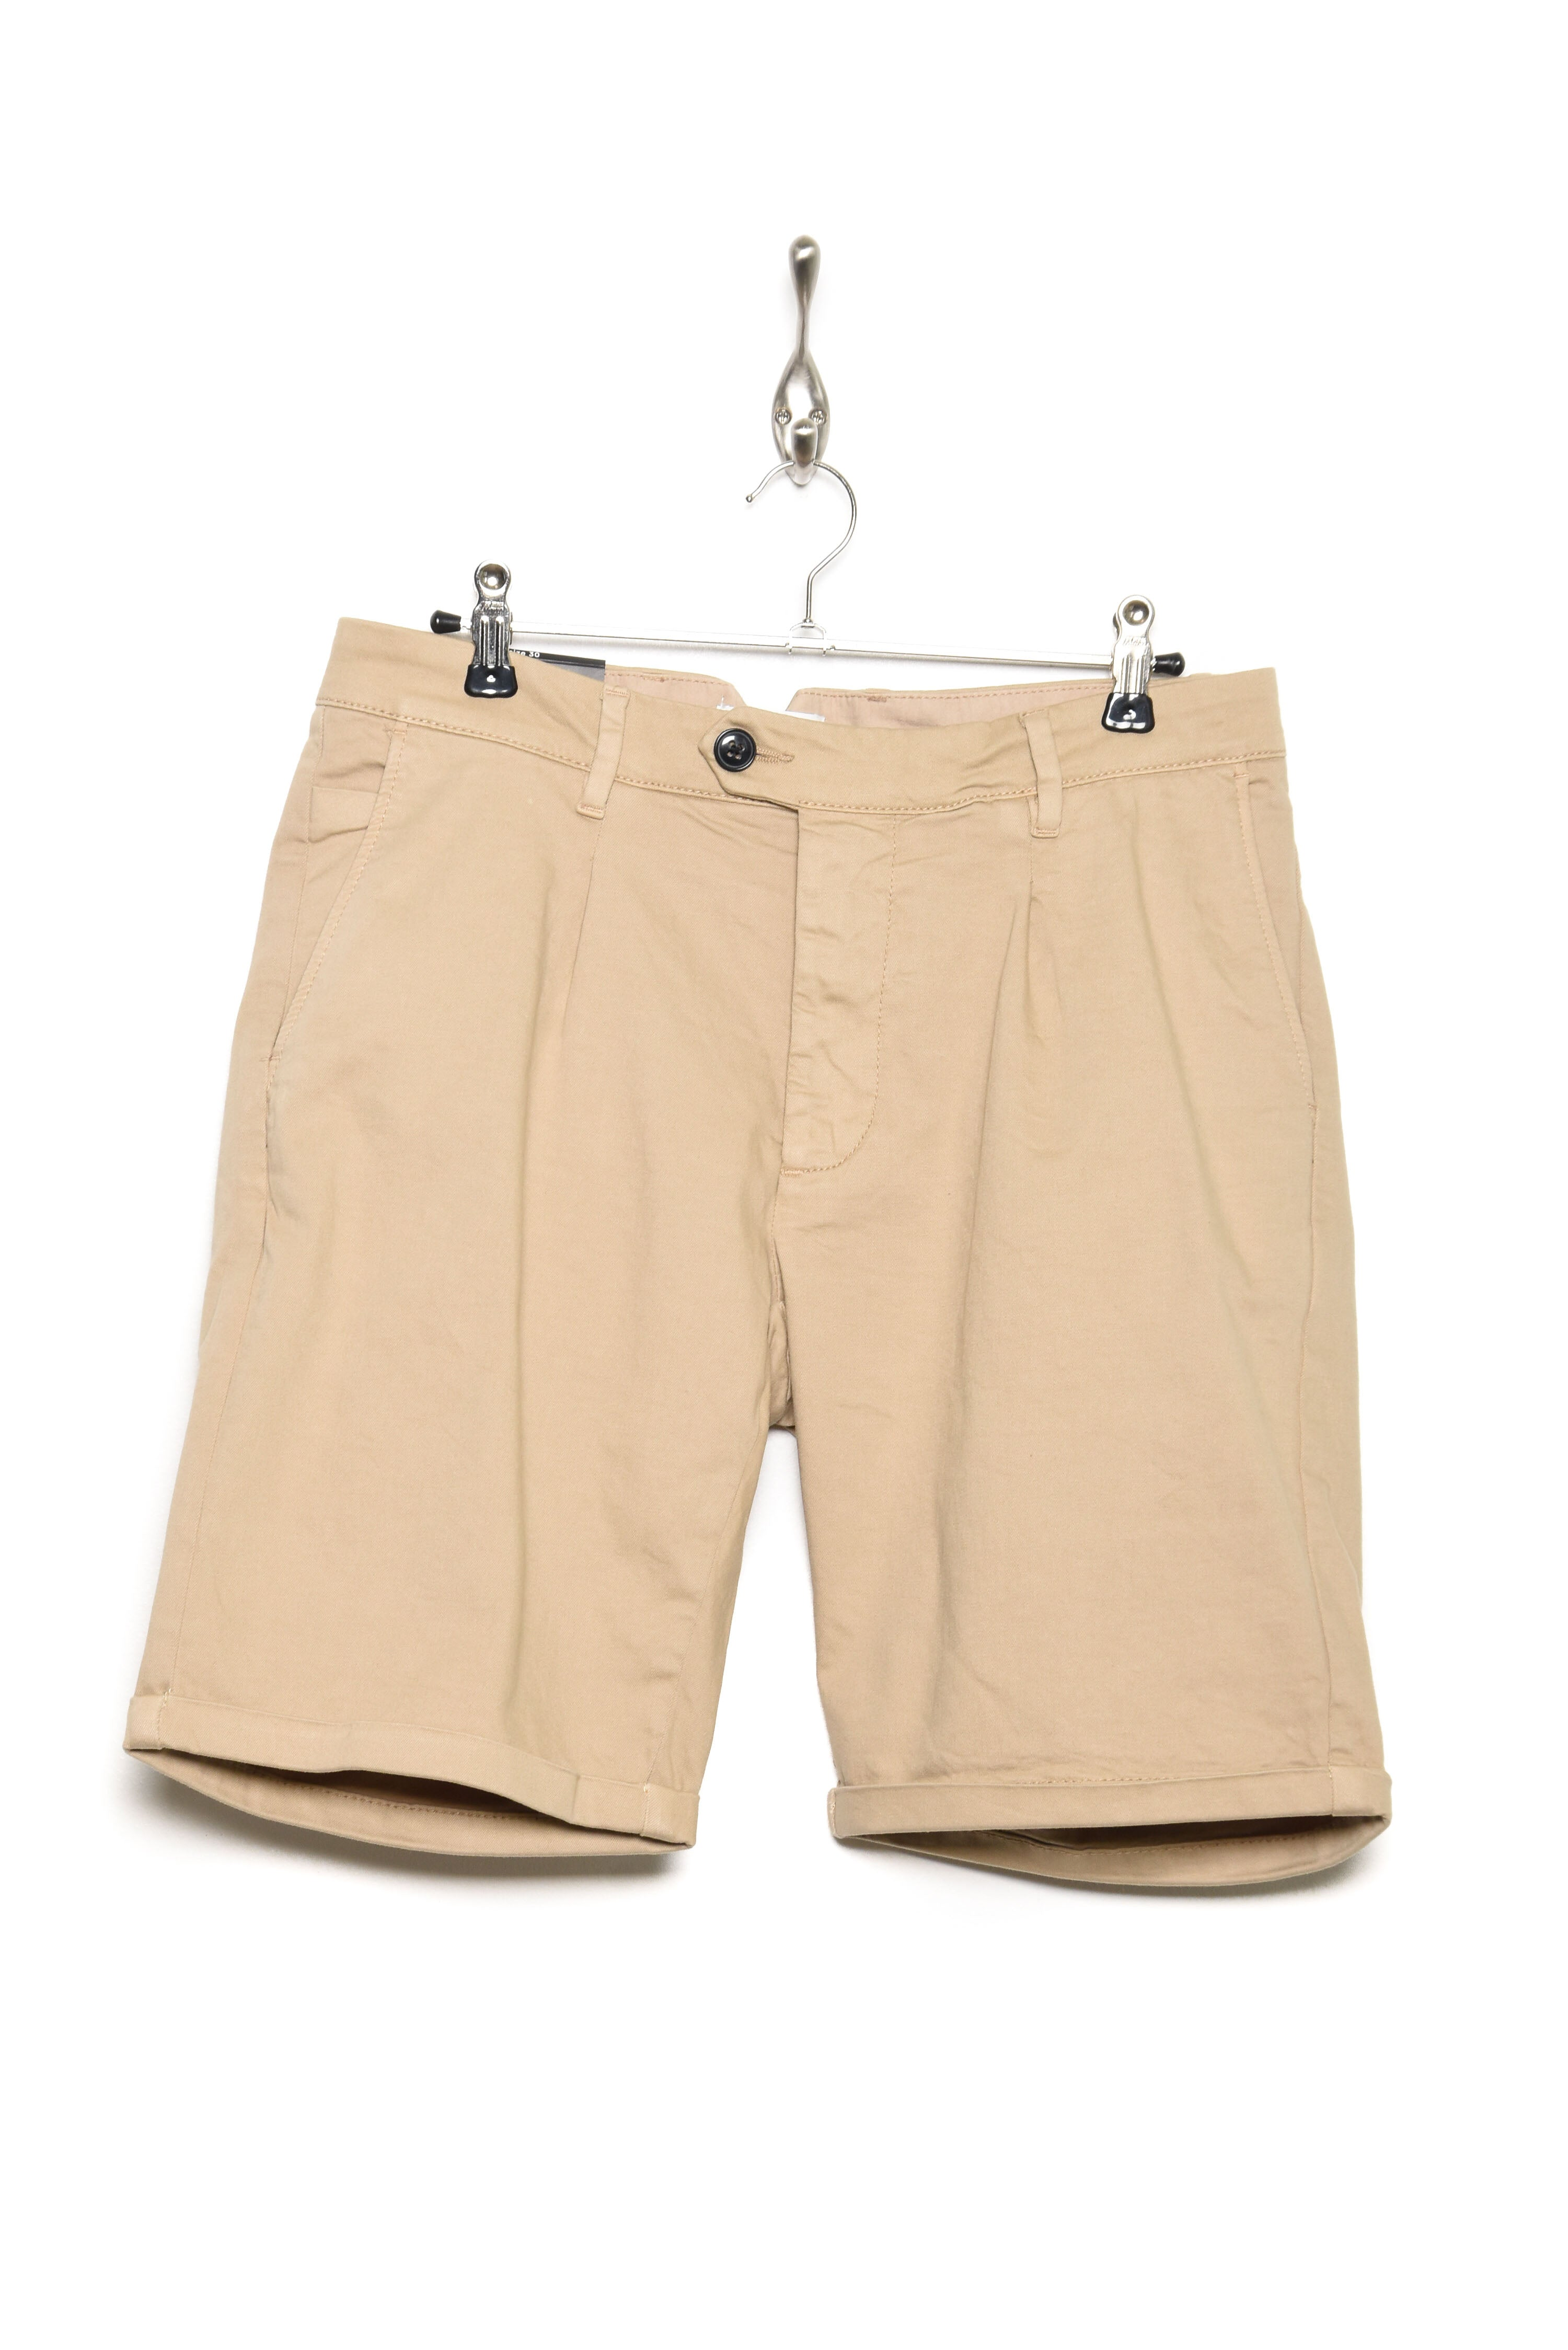 Nowadays Turn Up Shorts white pepper NY0504D3